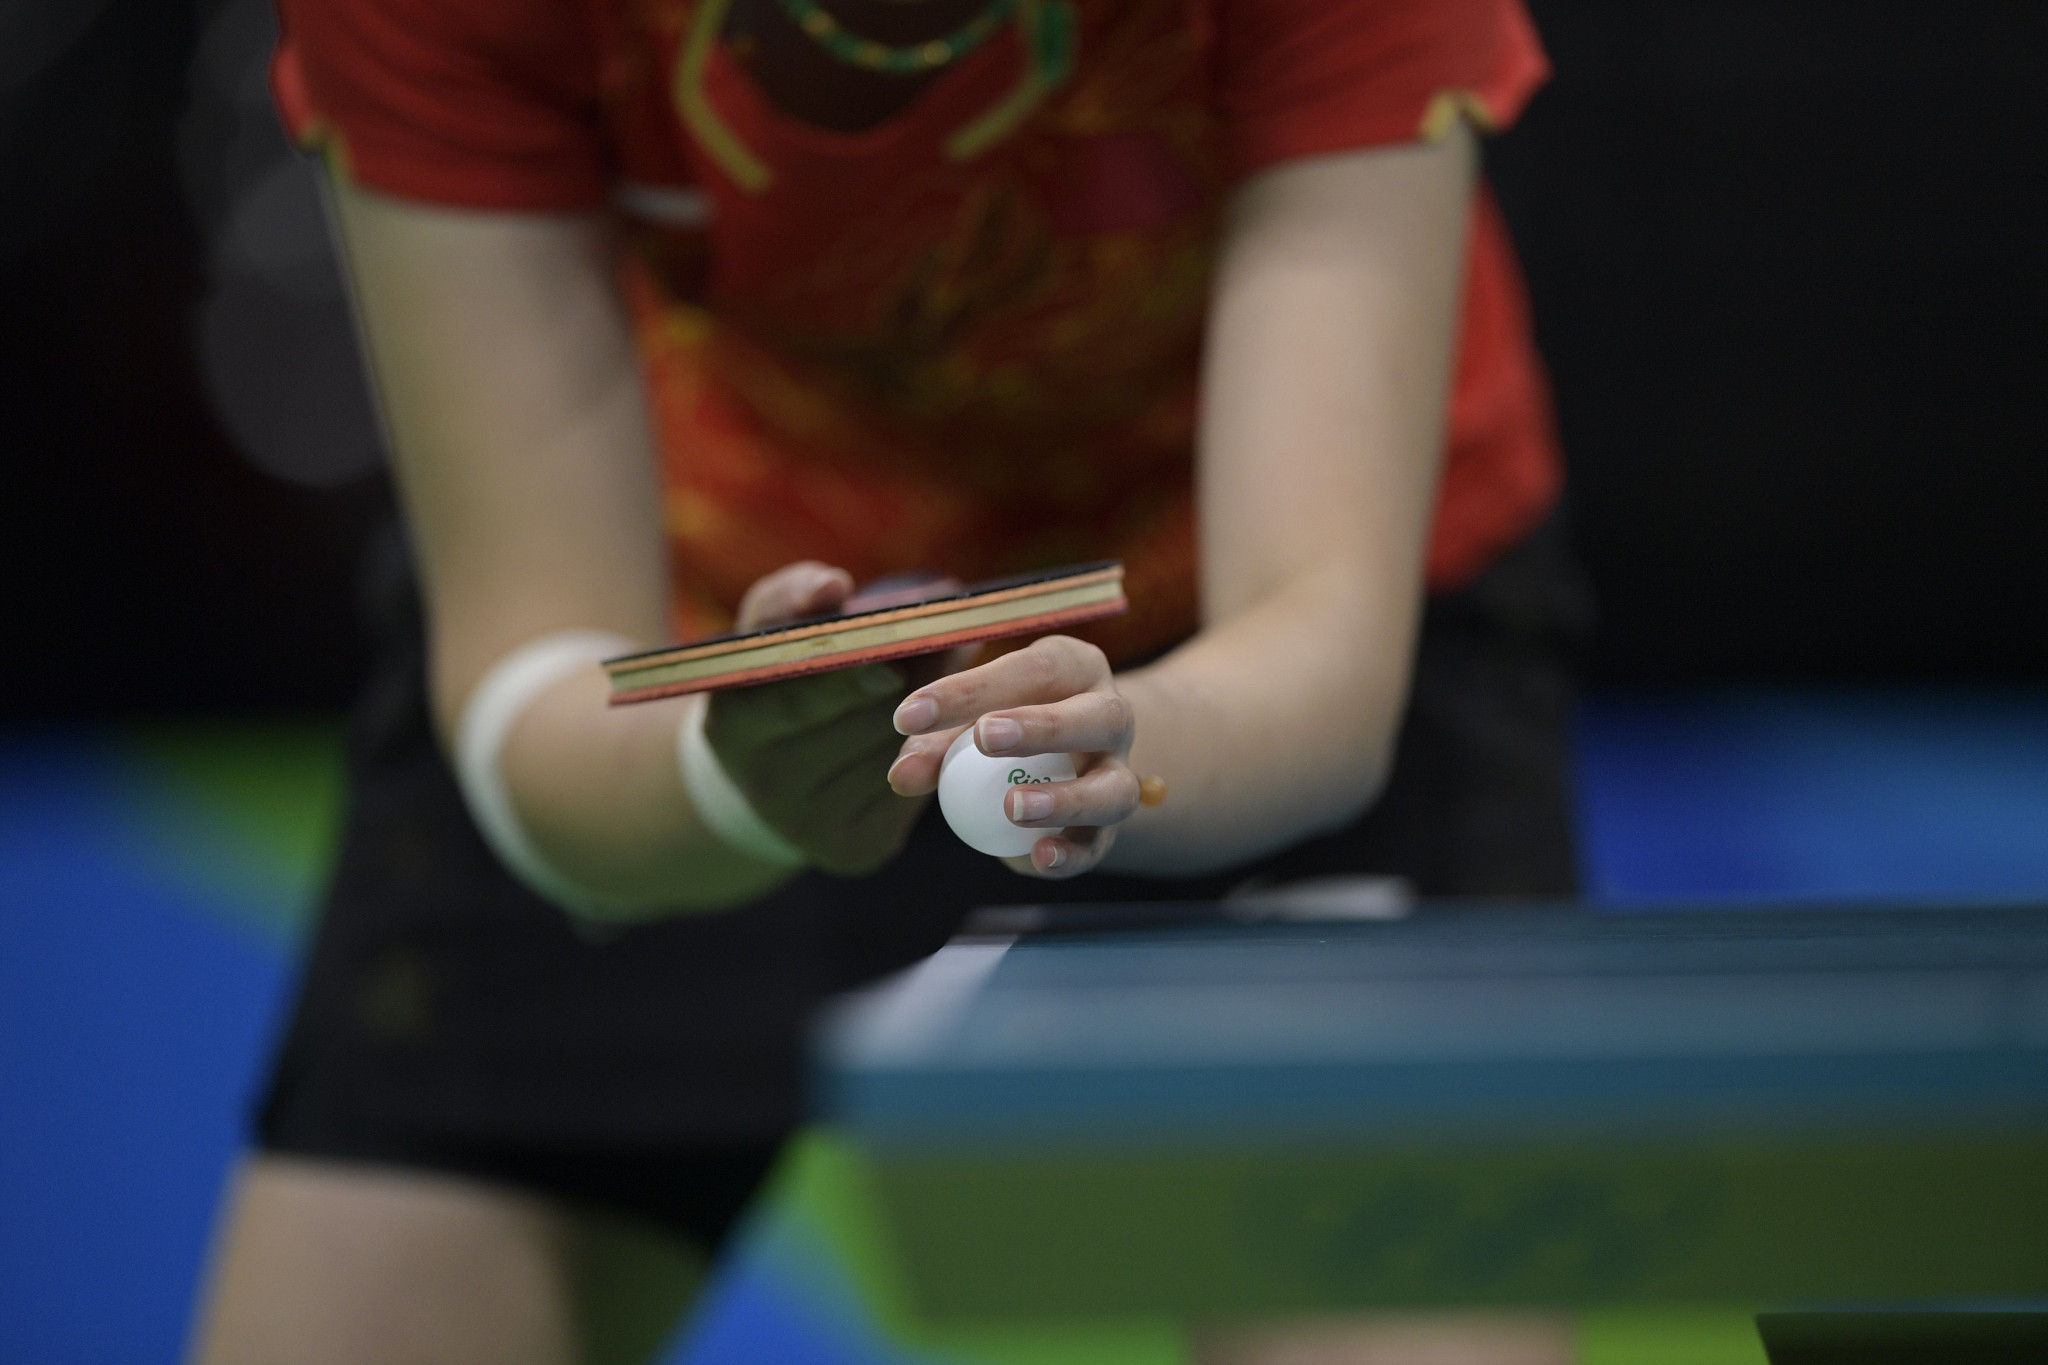 No ITTF events before July as World Team Table Tennis Championships may be postponed again